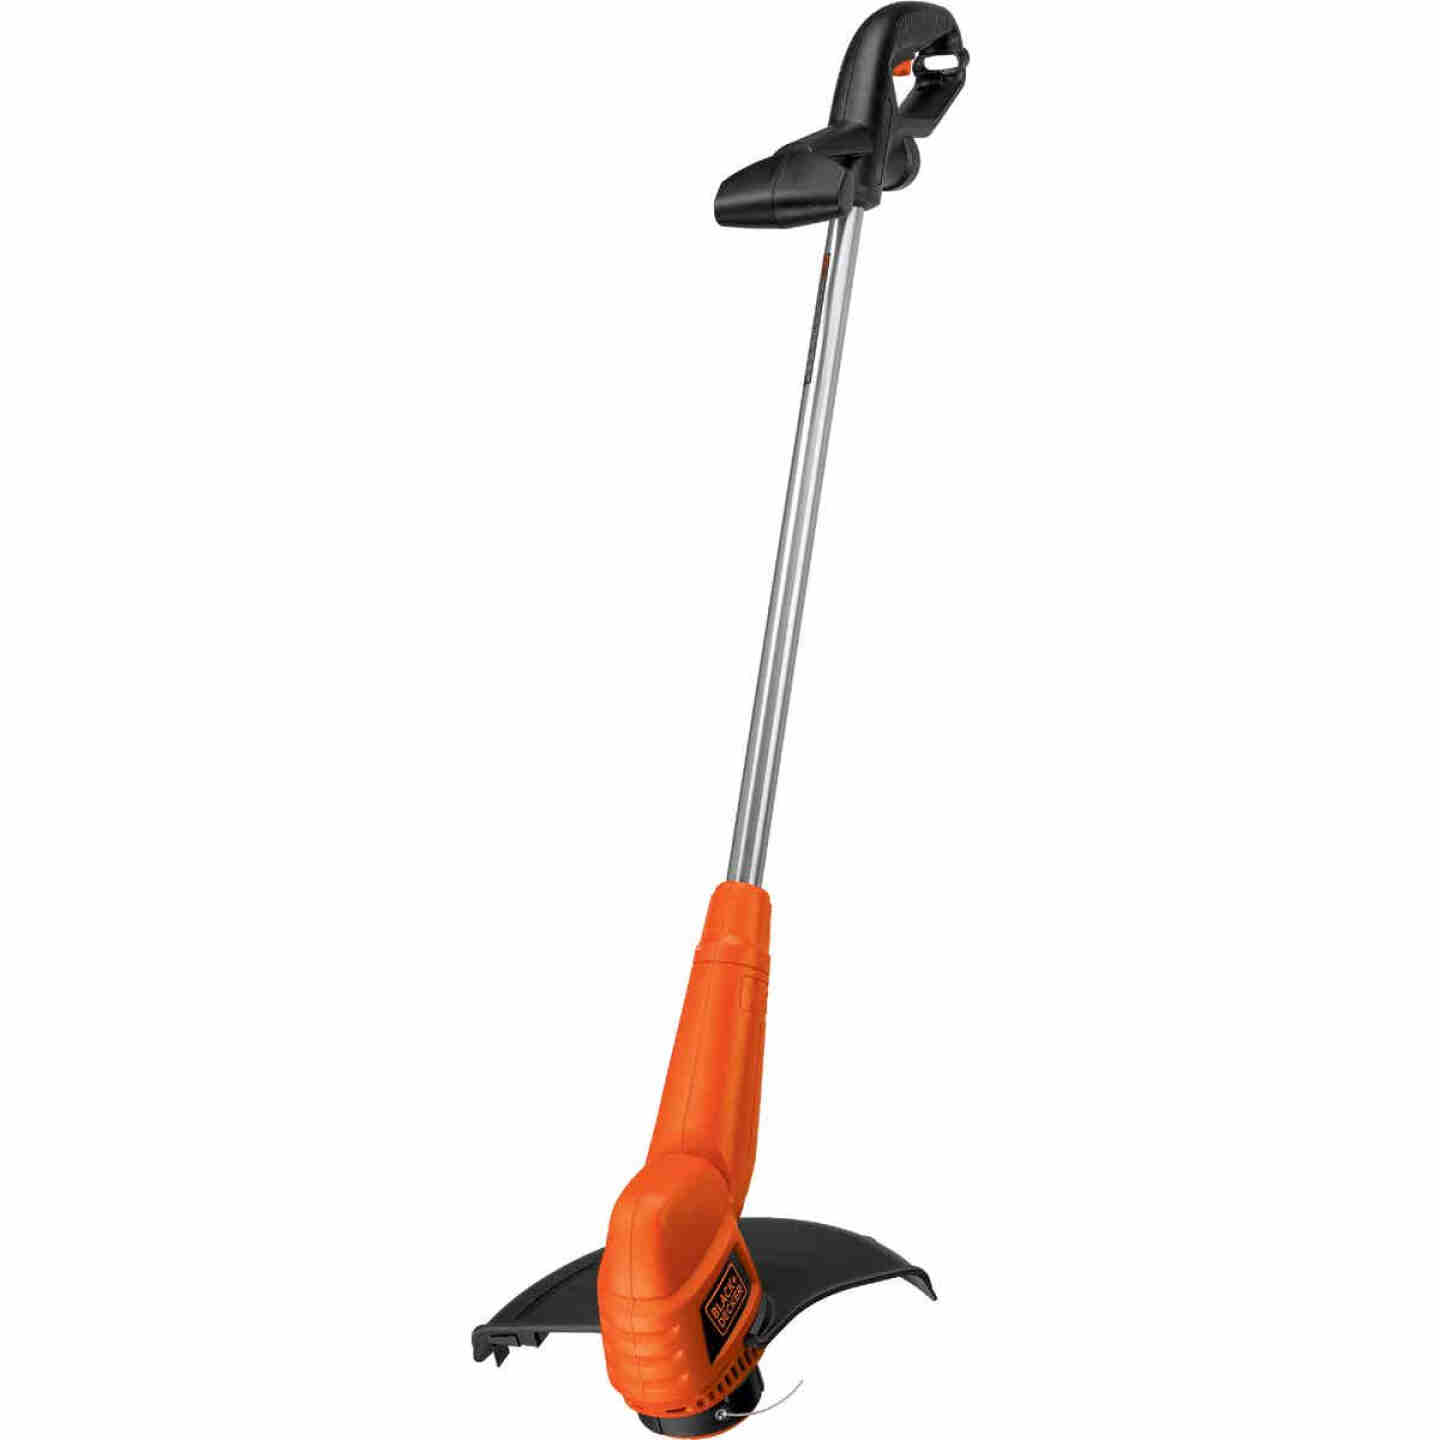 Black & Decker 13 In. 4.4-Amp Straight Shaft Corded Electric String Trimmer Edger Image 1